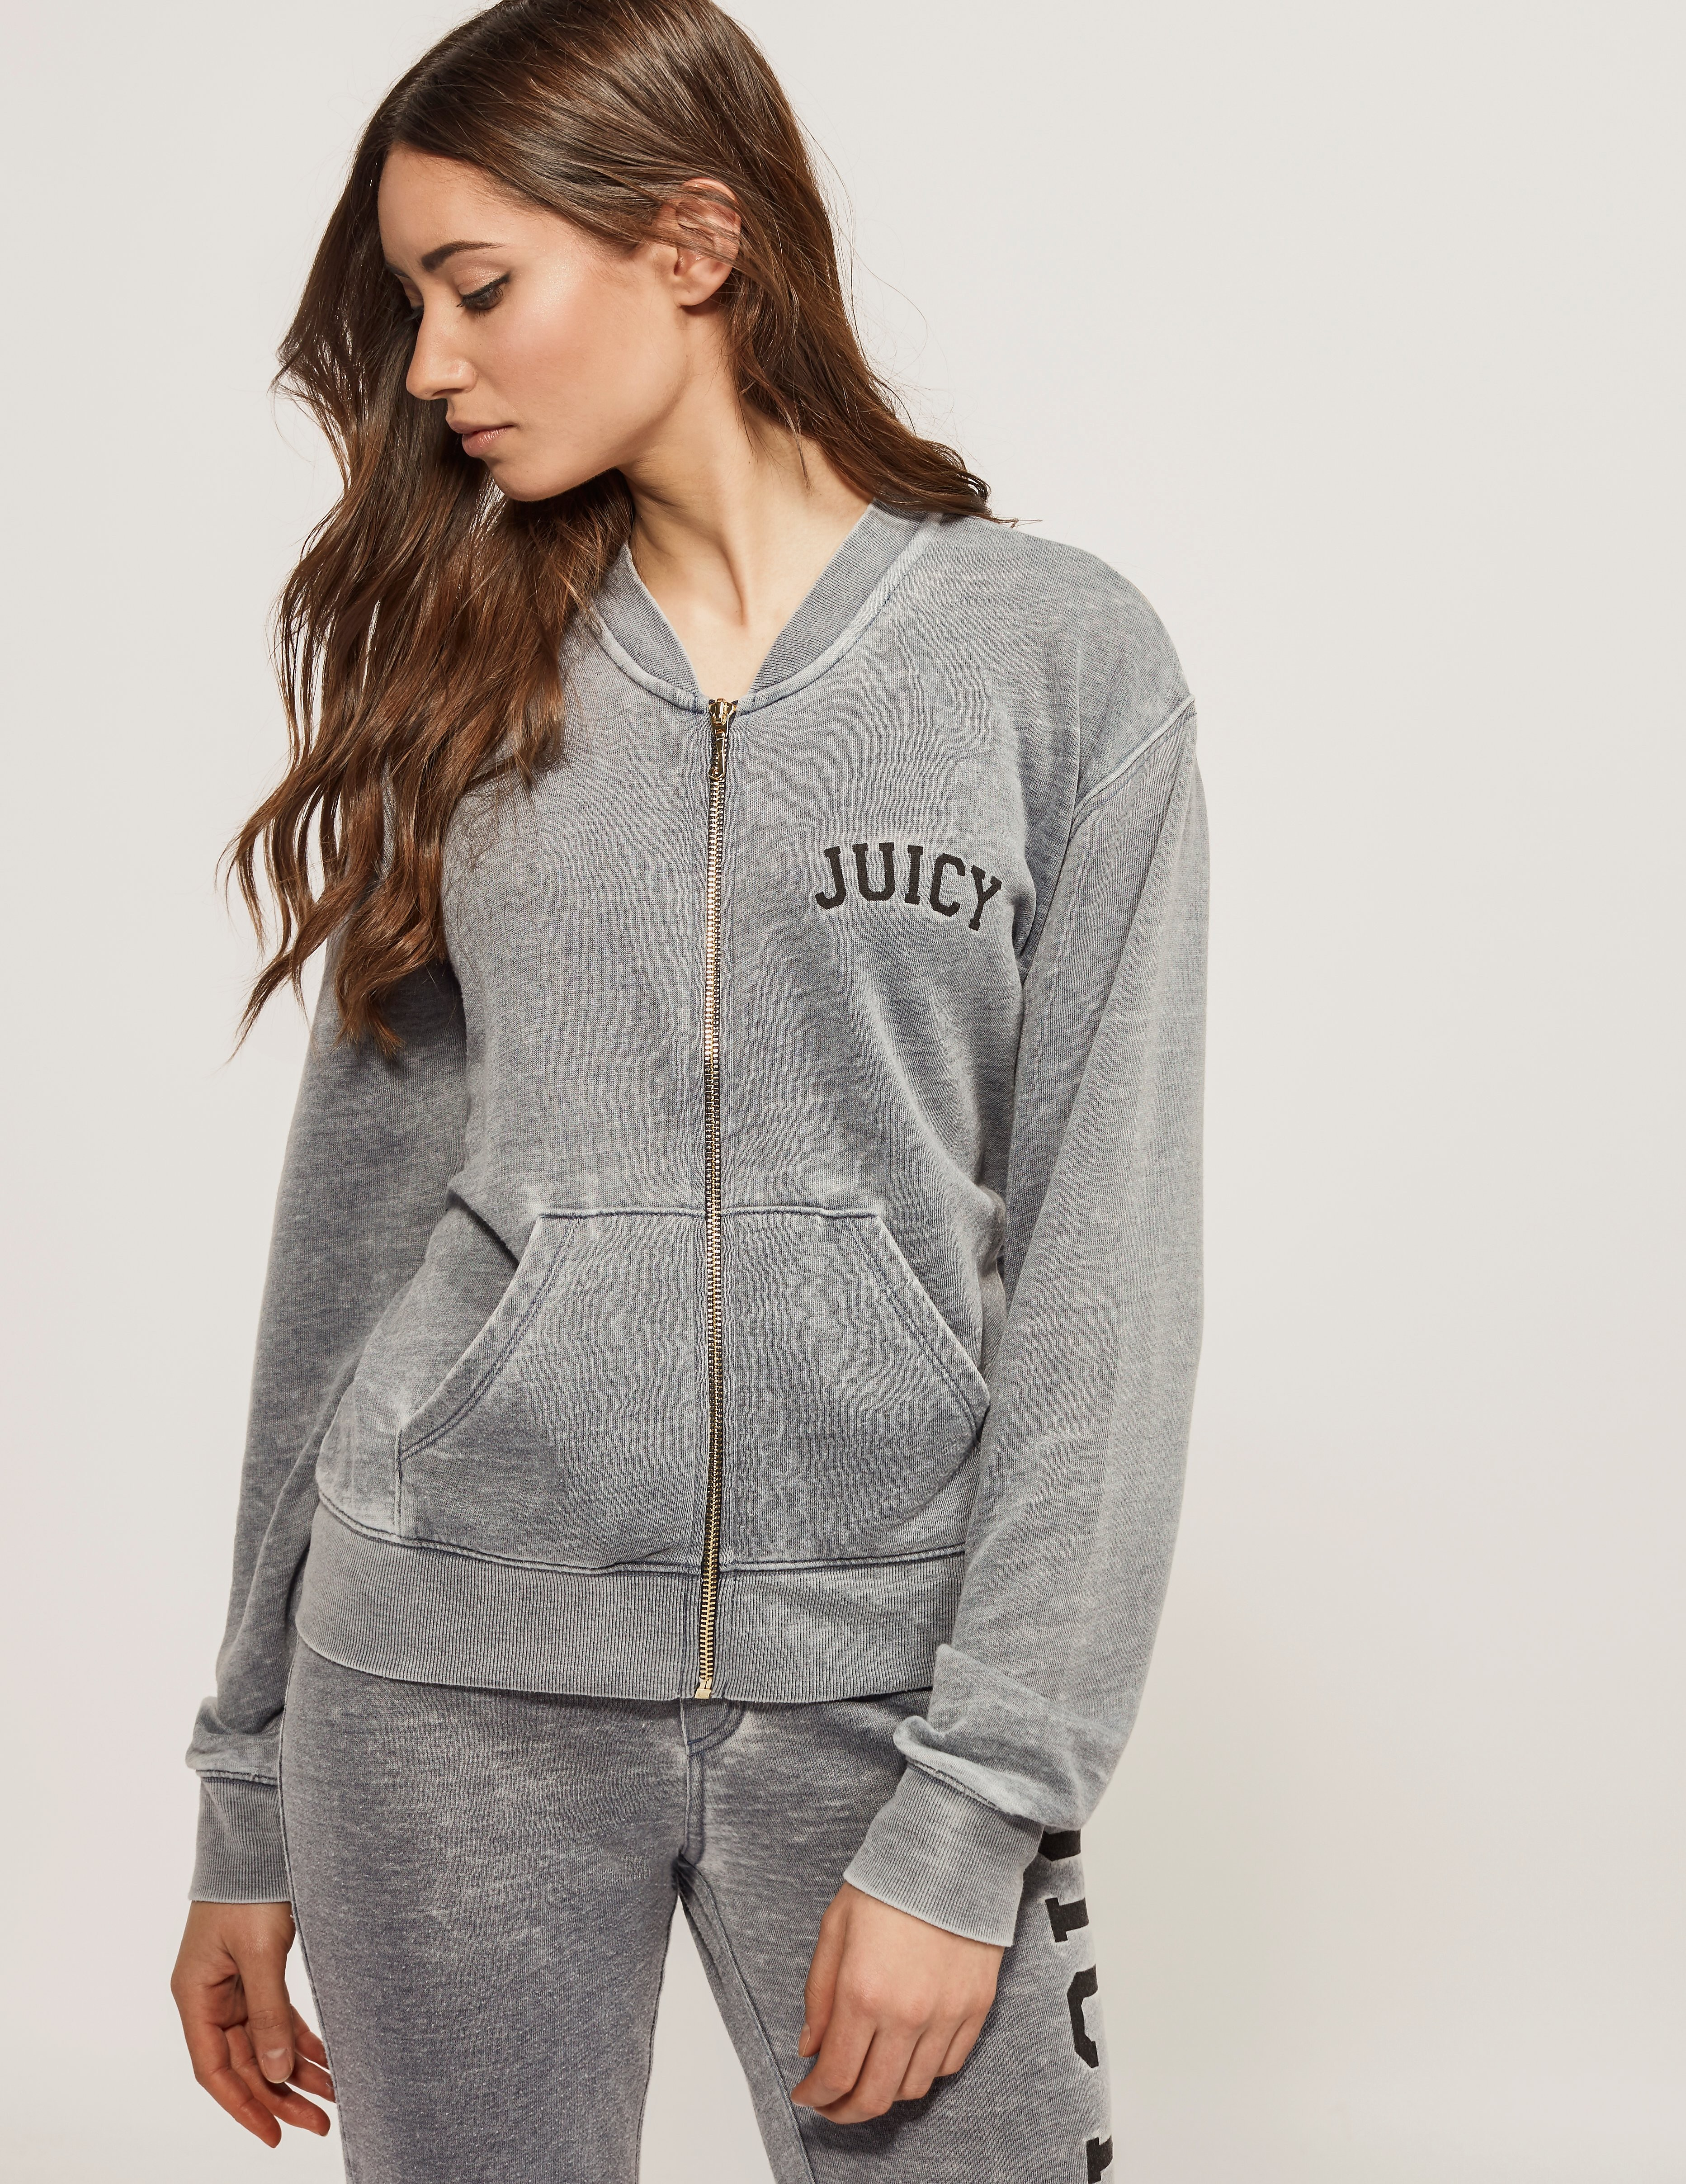 Juicy Couture Del Mar Burnout Zip Top